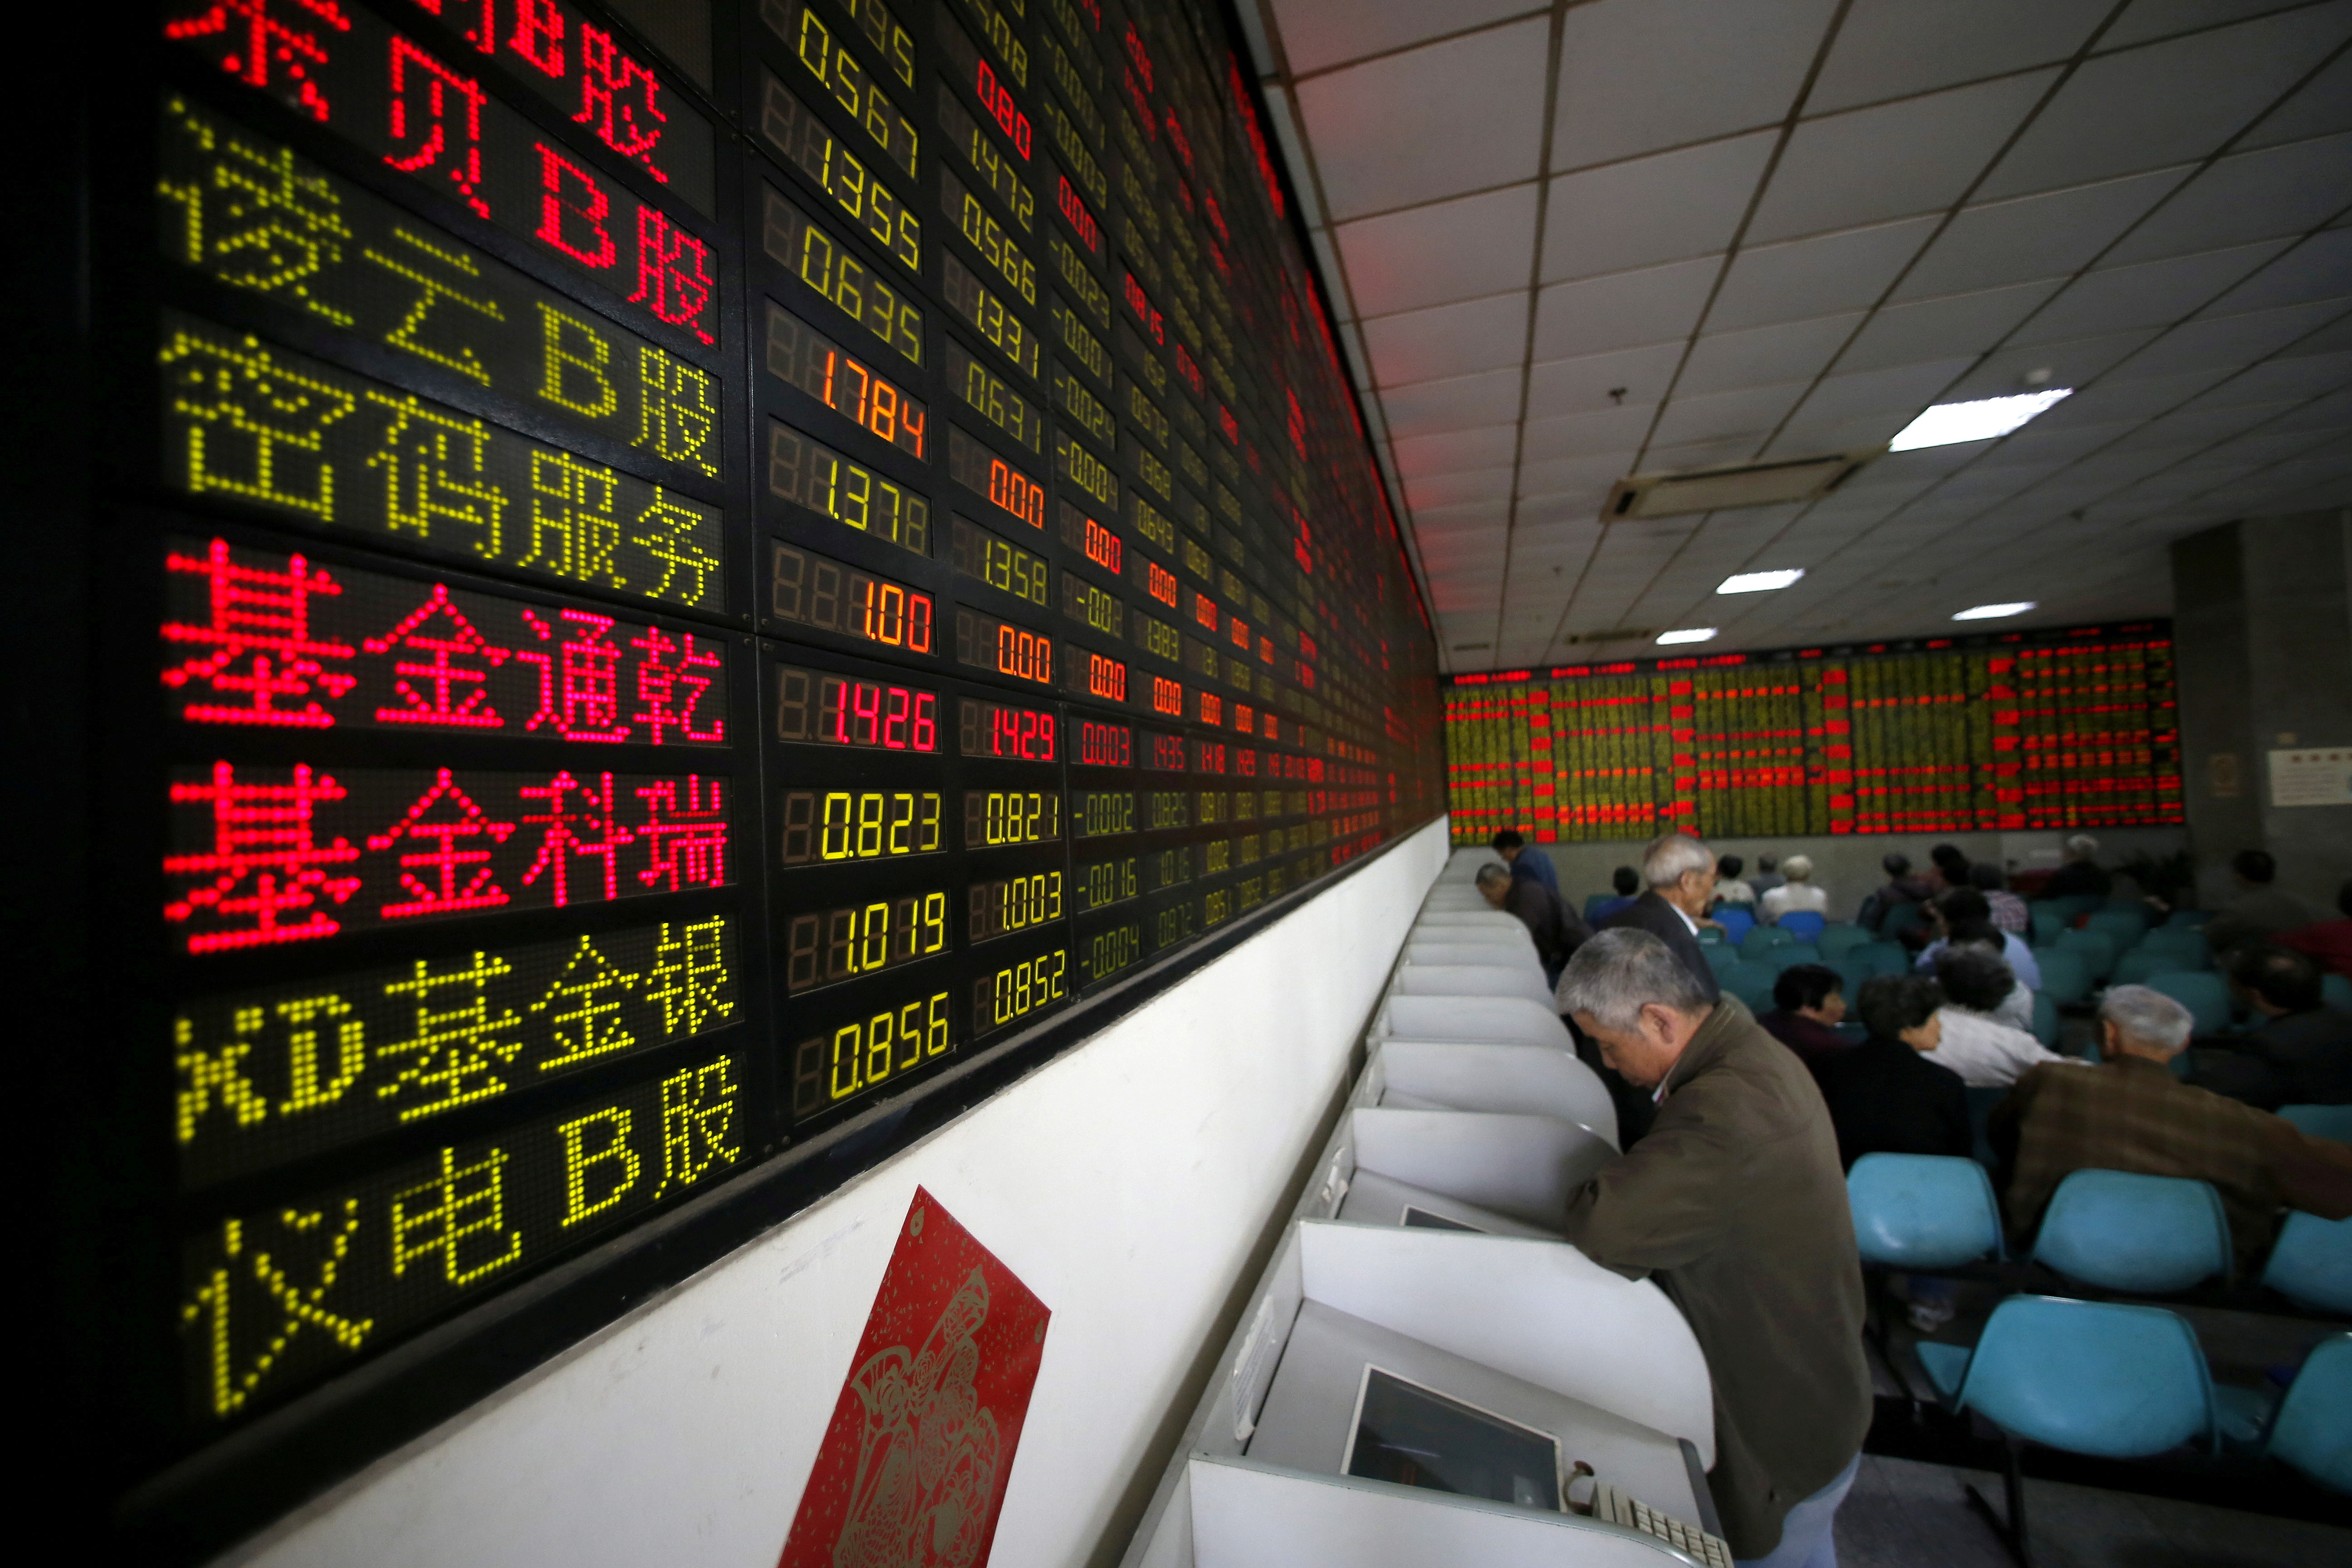 Investors look at computer screens showing stock information at a brokerage house in Shanghai, China, April 21, 2016. REUTERS/Aly Song//File Photo